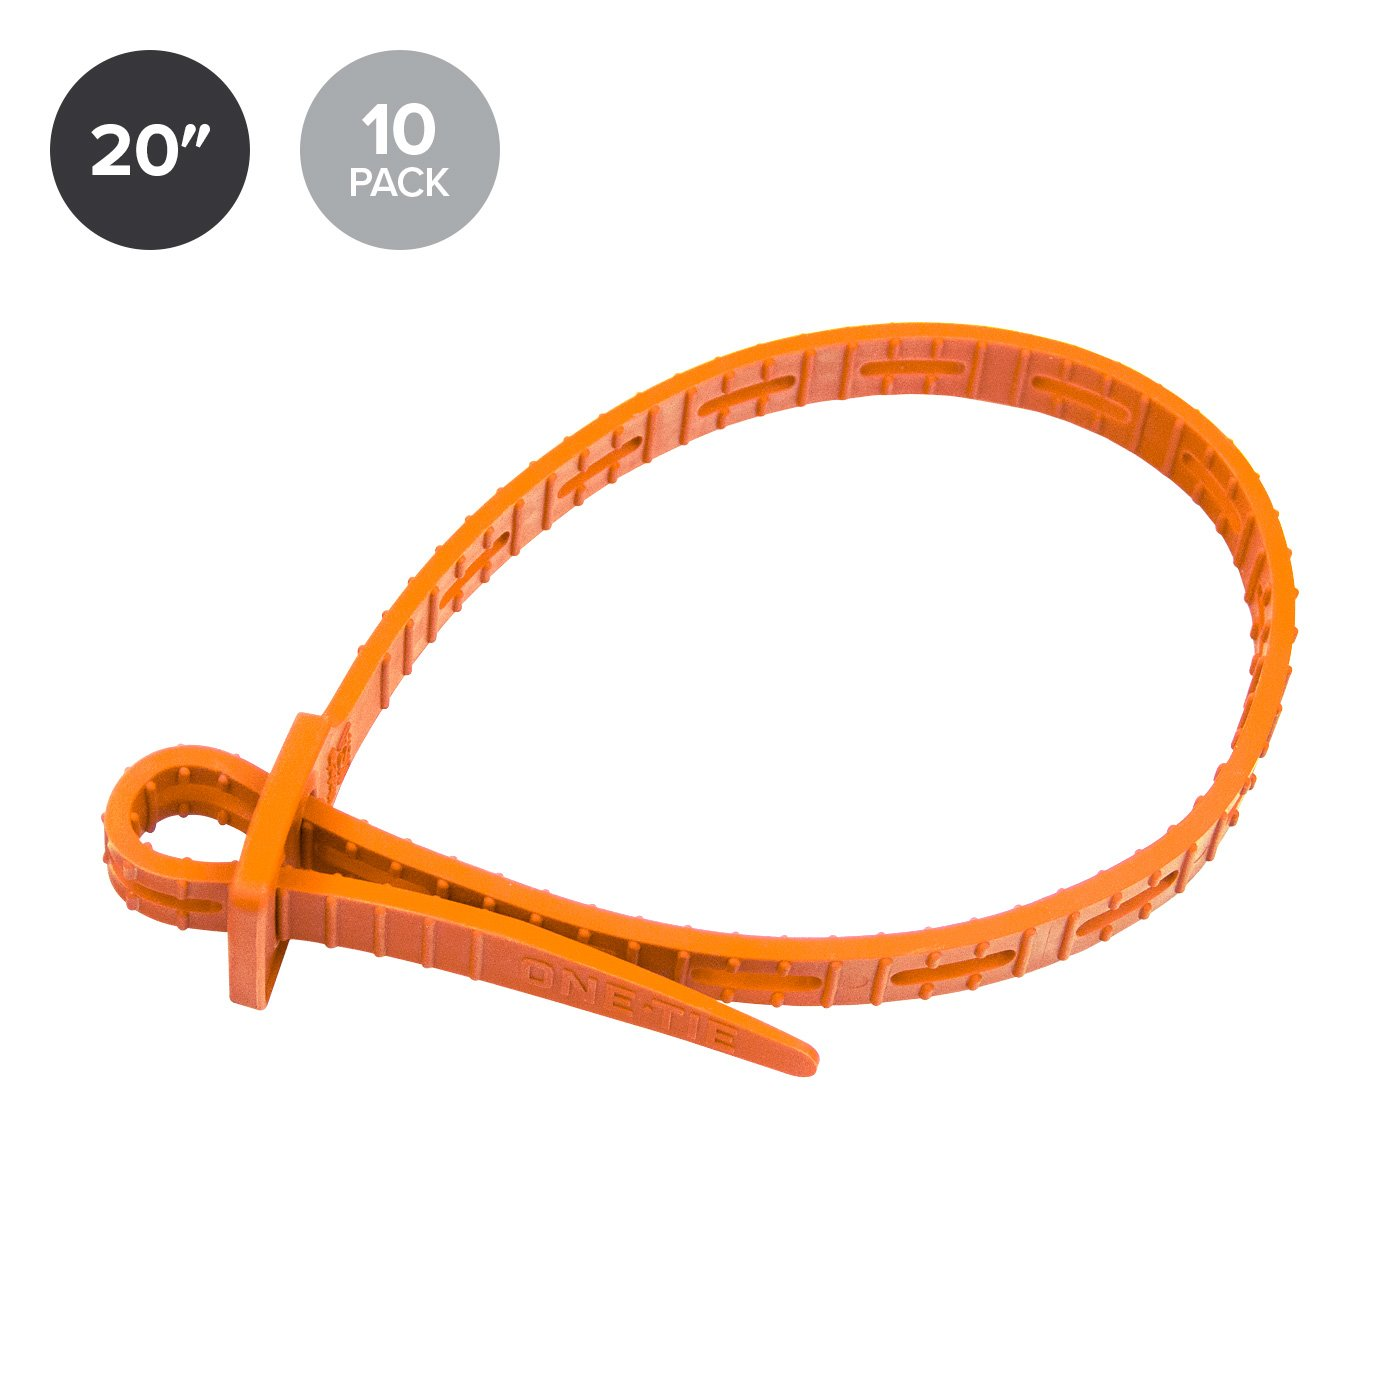 ONE-TIE Reusable Tie Strap, Orange, 20 inches, 10 Pack by ONE-TIE